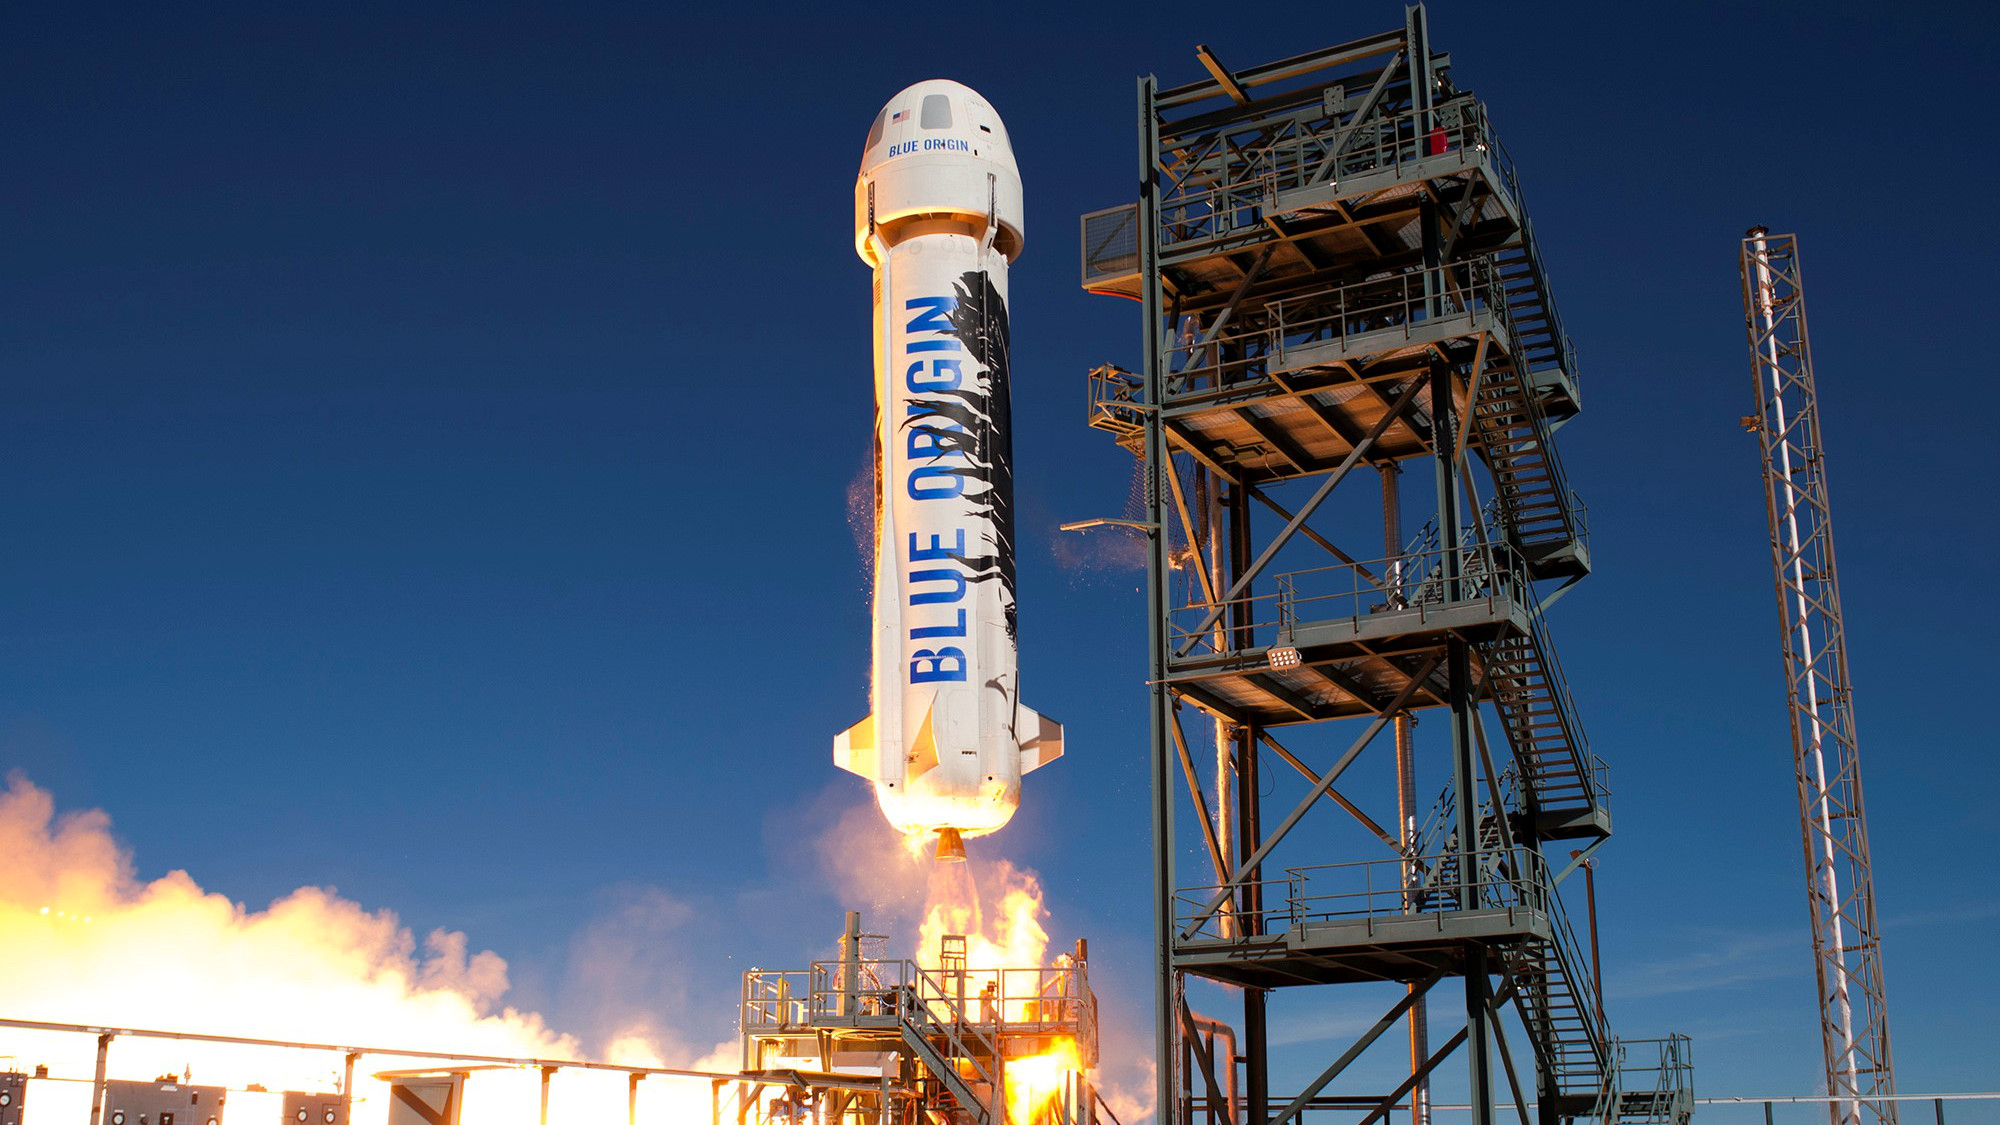 You can watch Jeff Bezos' Blue Origin reusable rocket launch this Sunday